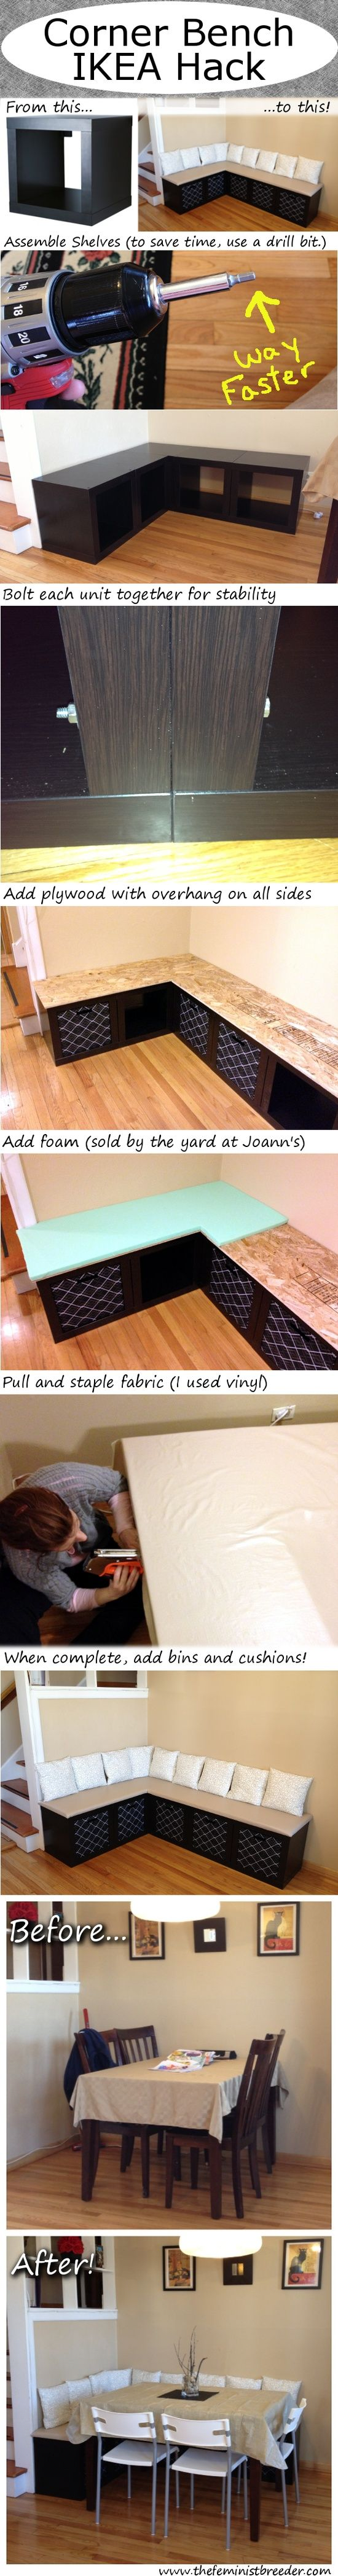 A corner bench with storage made from some IKEA wall shelves and a little upholstering. All done in less than one day